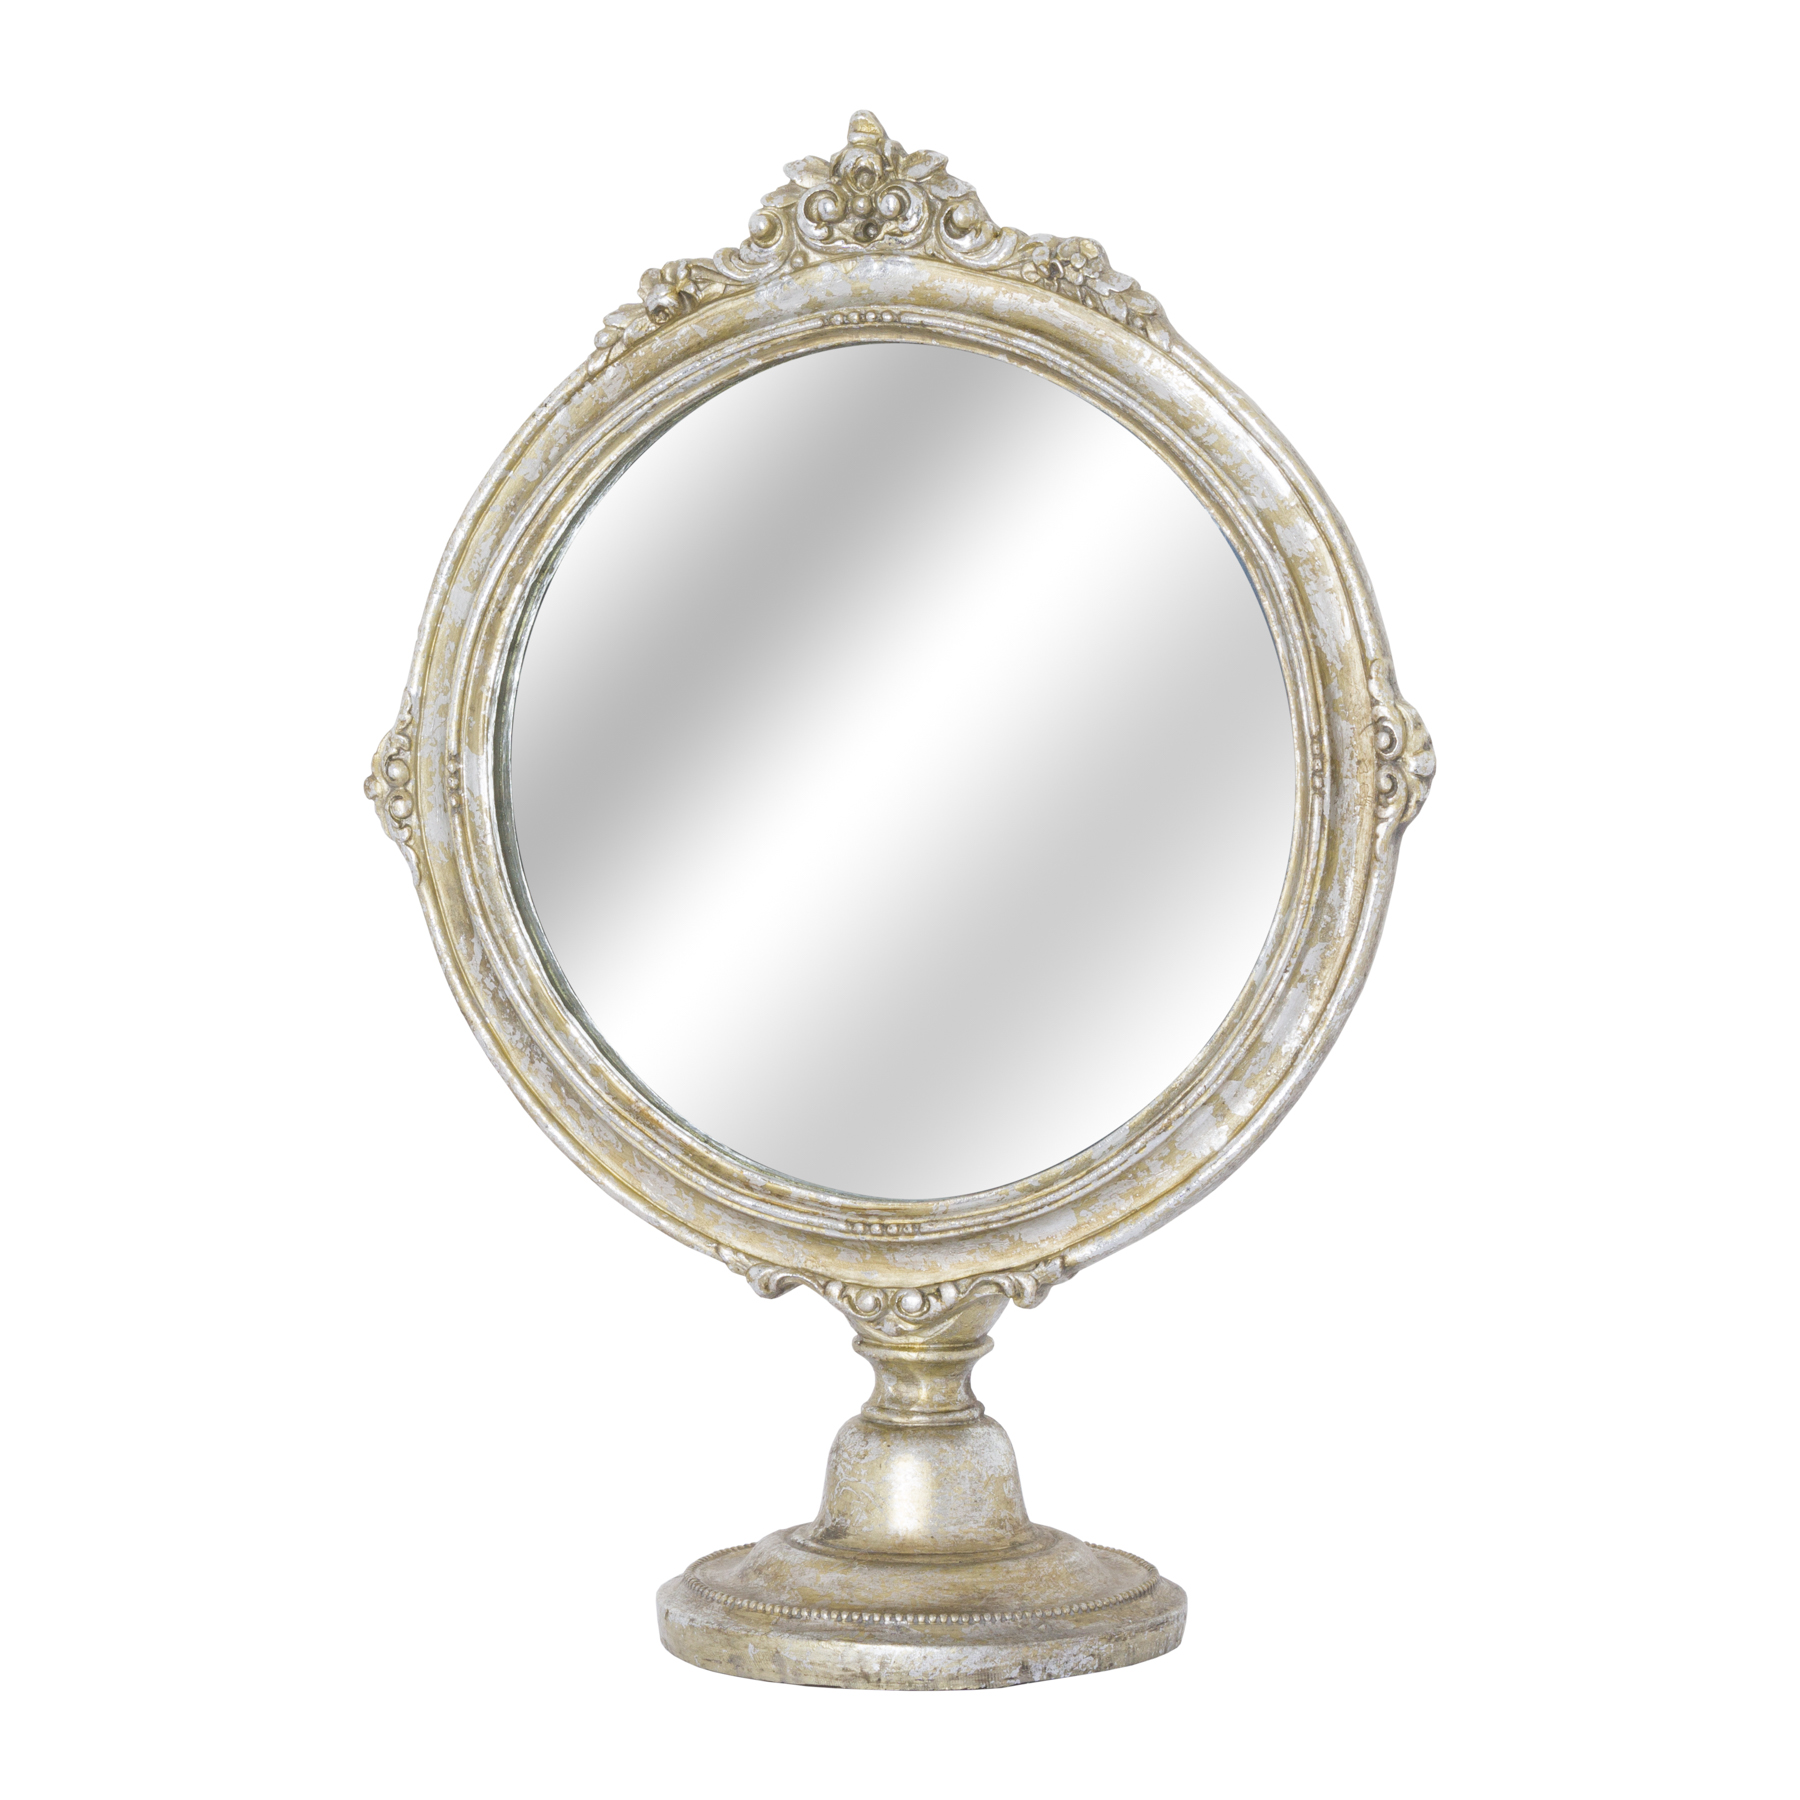 Antique Silver Ornate Round Dressing Table Mirror From